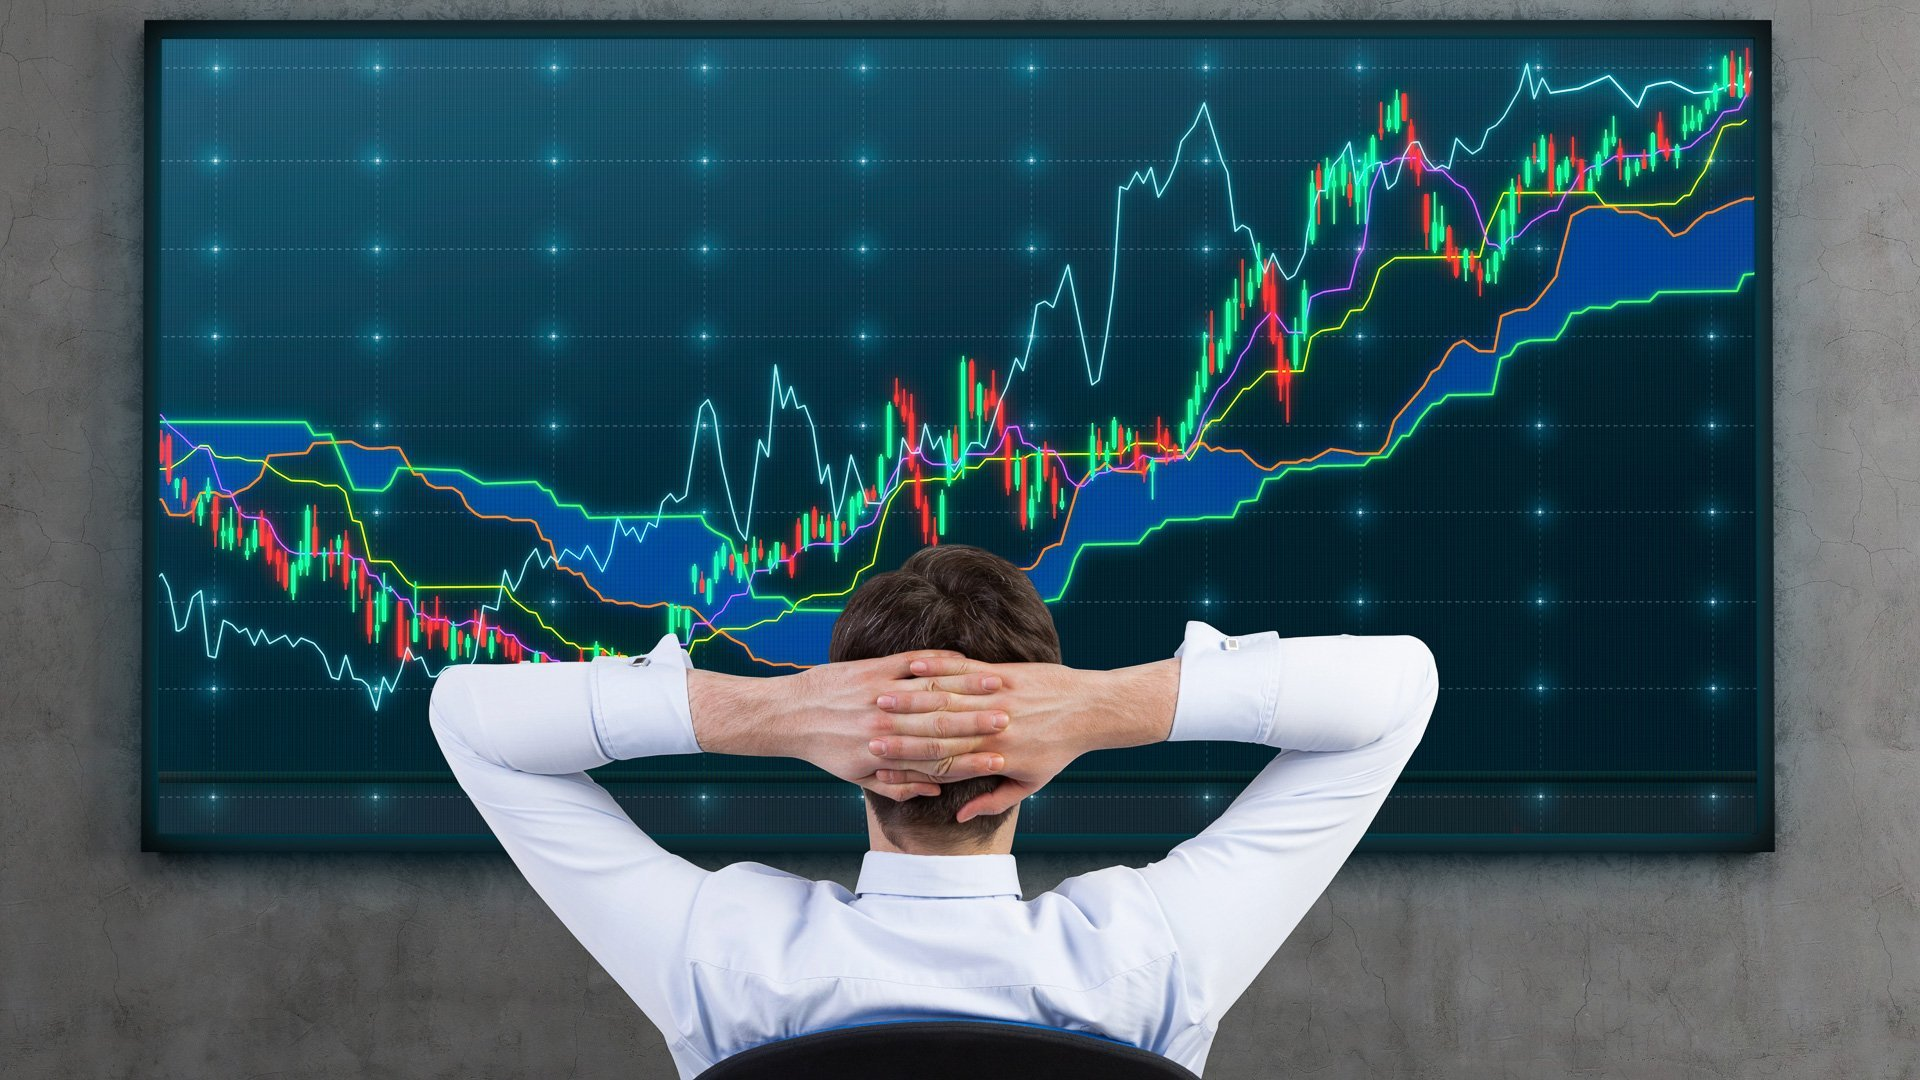 Post-pandemic investing tips to help navigate a volatile market